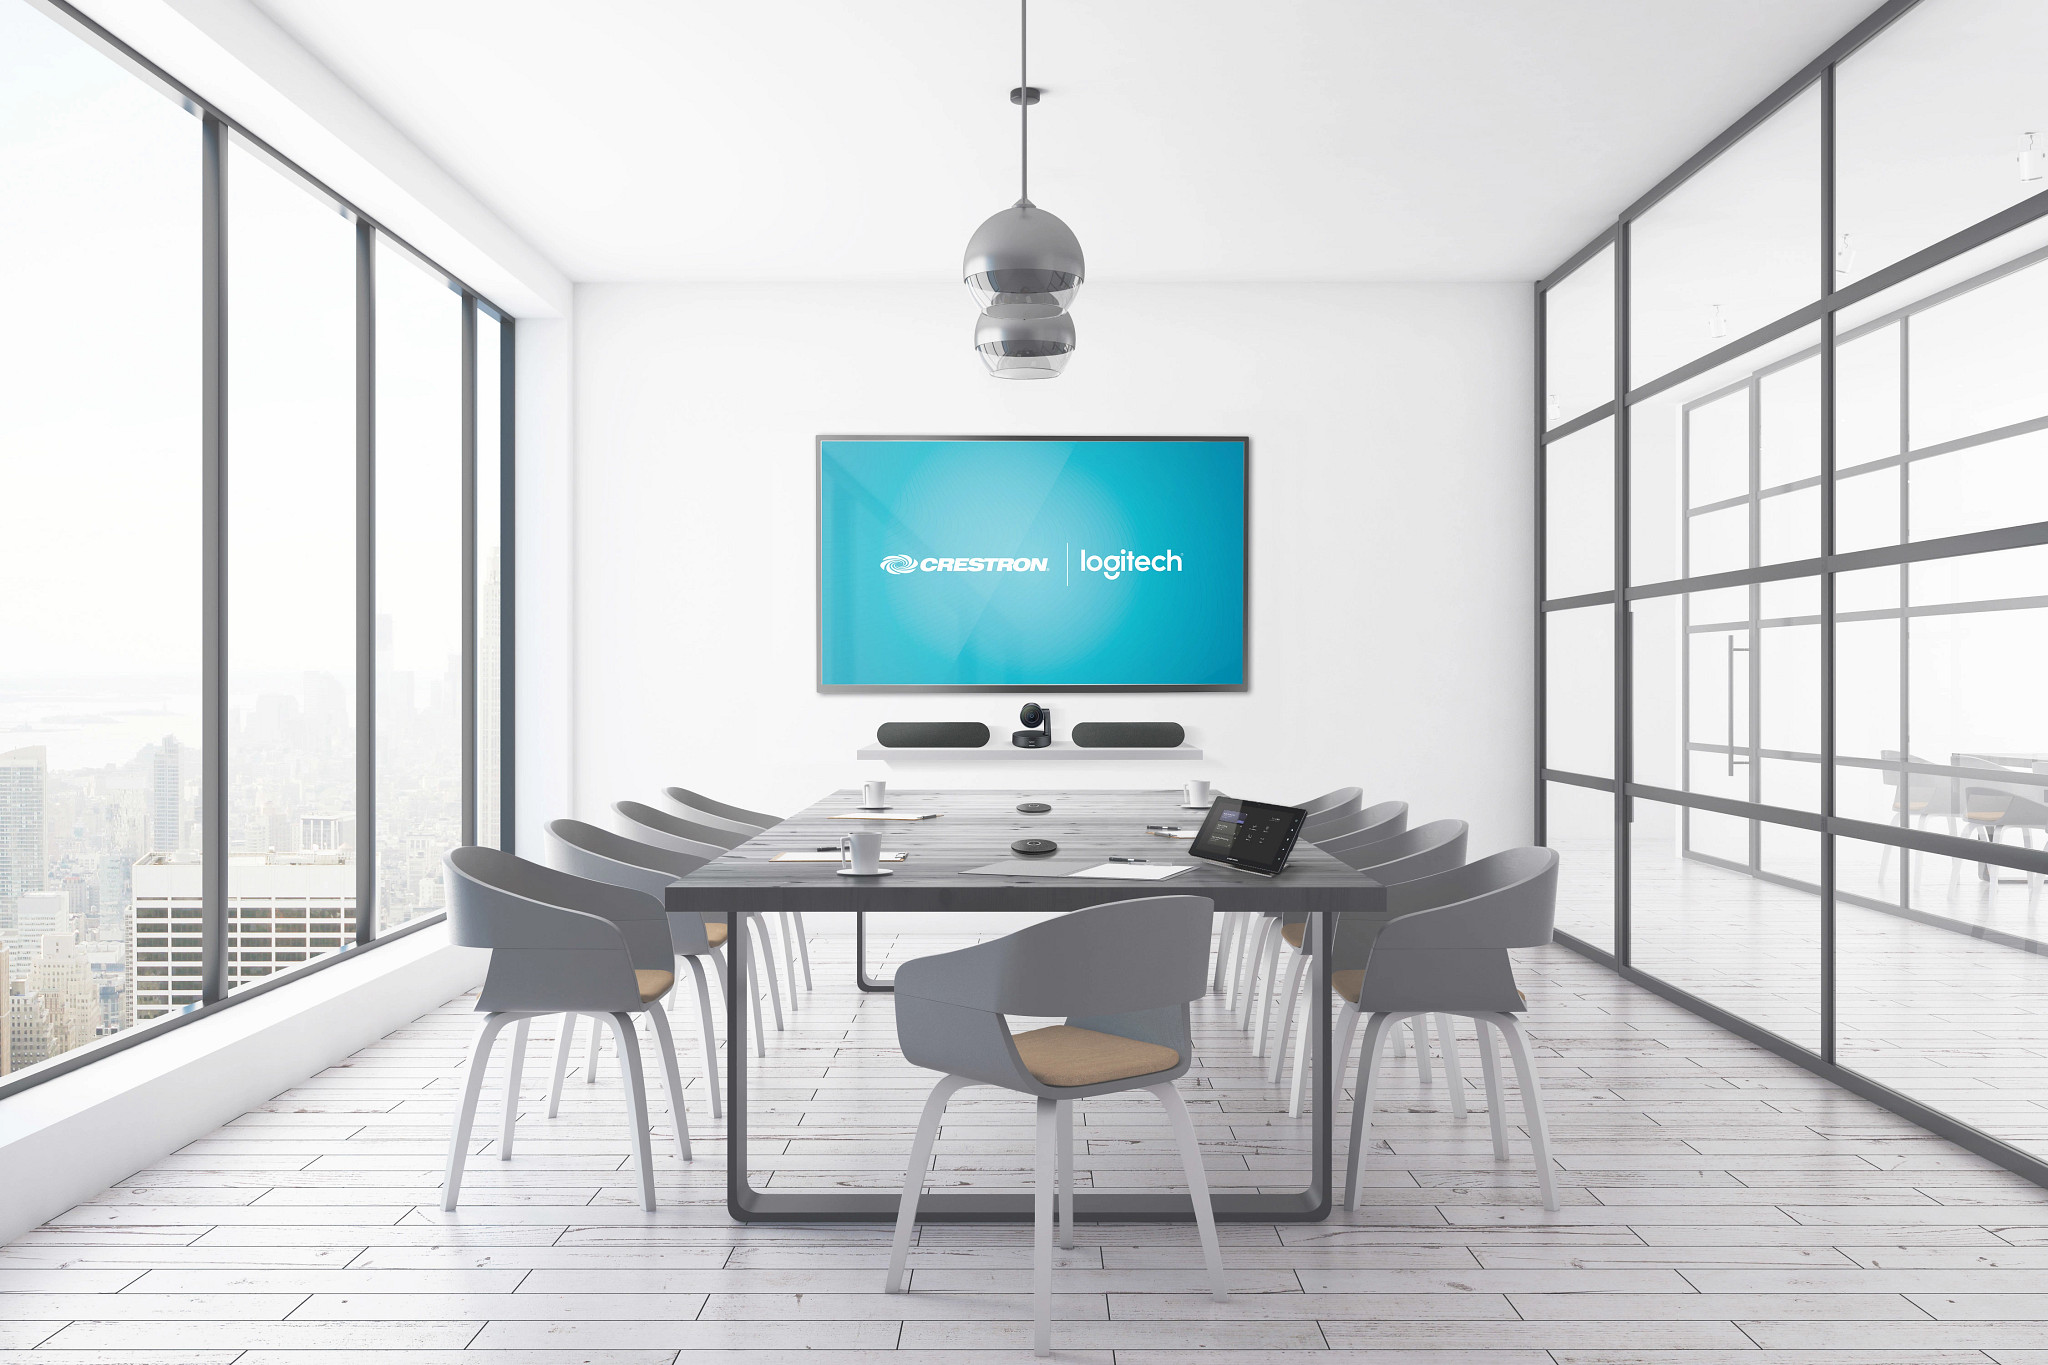 Office meeting room with tv that says Crestron | logitech